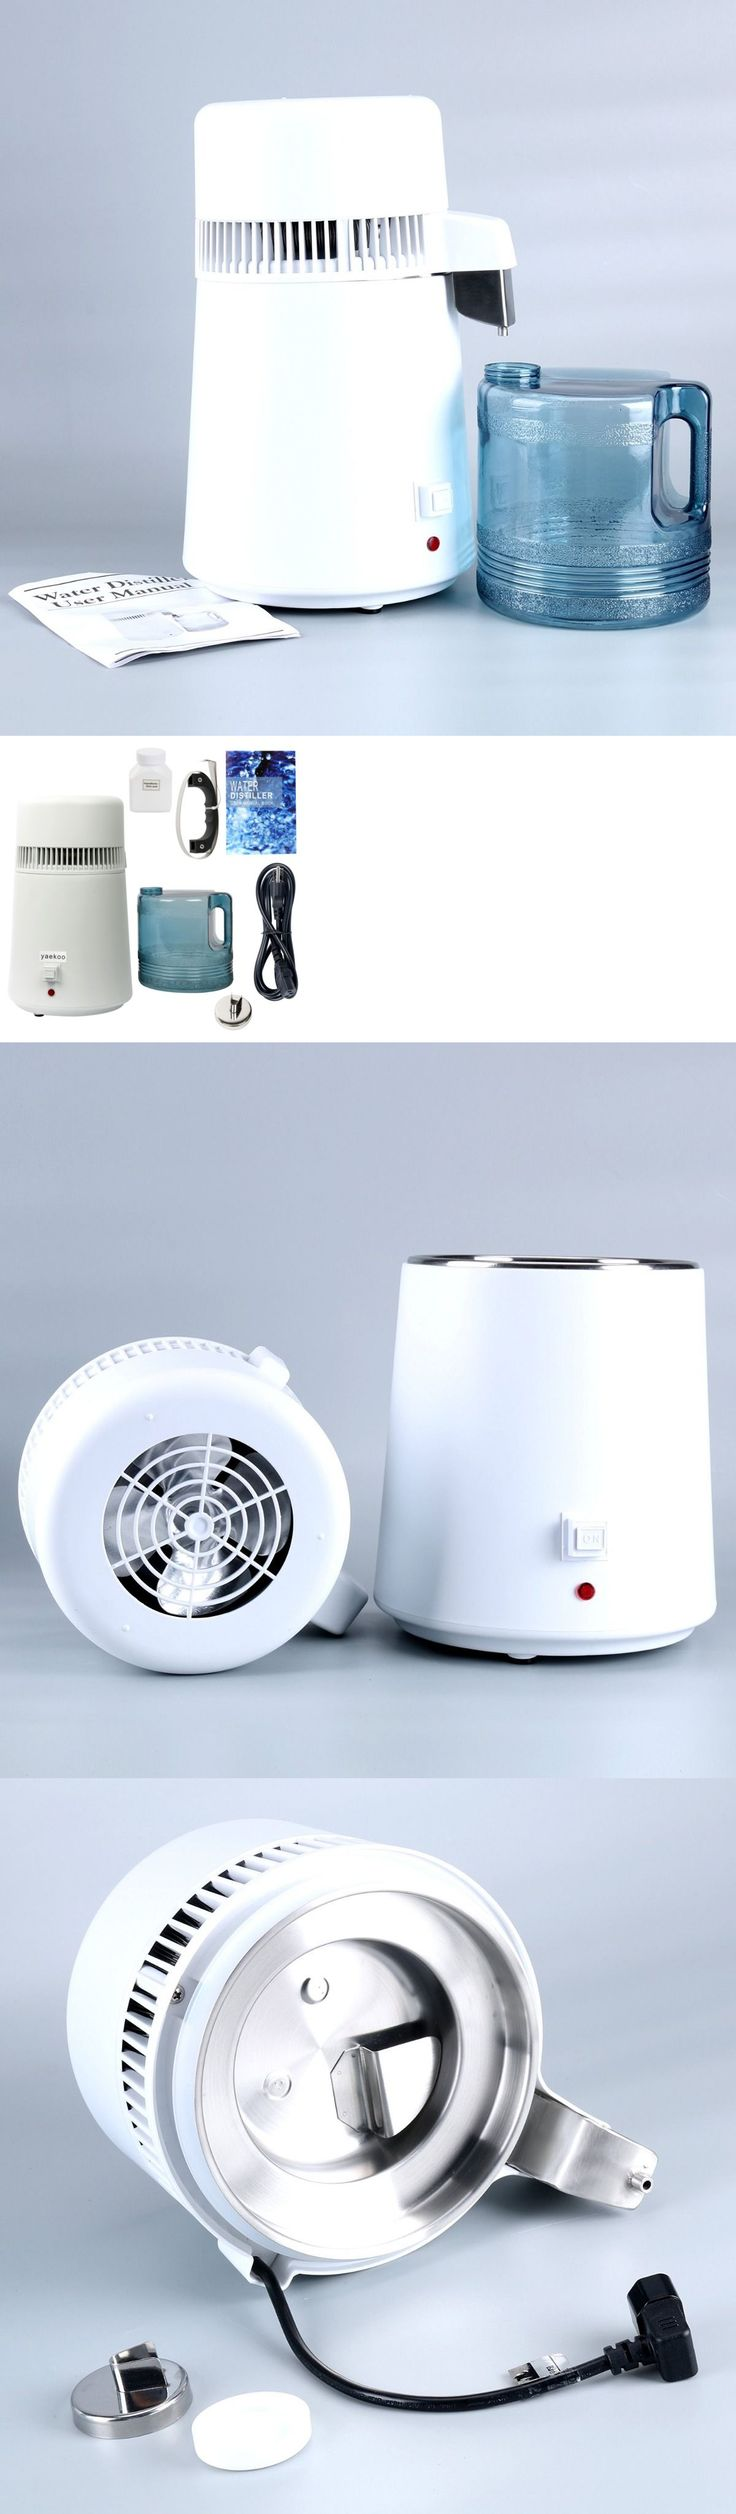 Water Filters 20684: 110-120V Ac 750W 1Gal 4L Pure Water Distiller,All Stainless Steel Internal White -> BUY IT NOW ONLY: $63.48 on eBay!